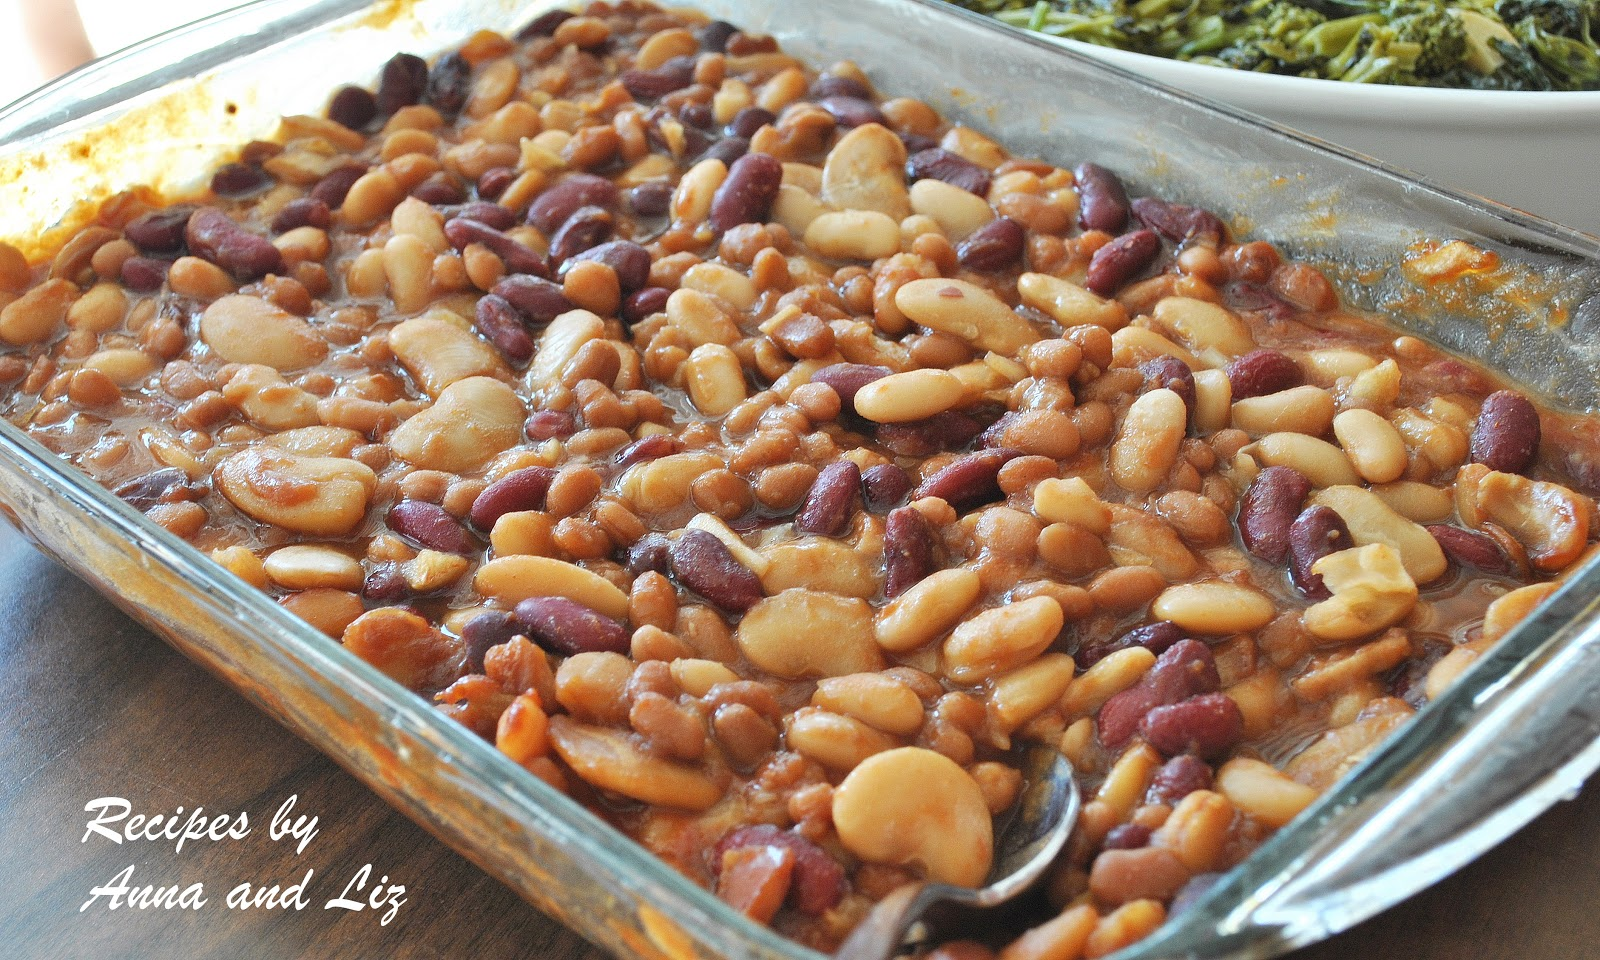 baked beans ii boston baked beans maple baked beans baked beans in the ...